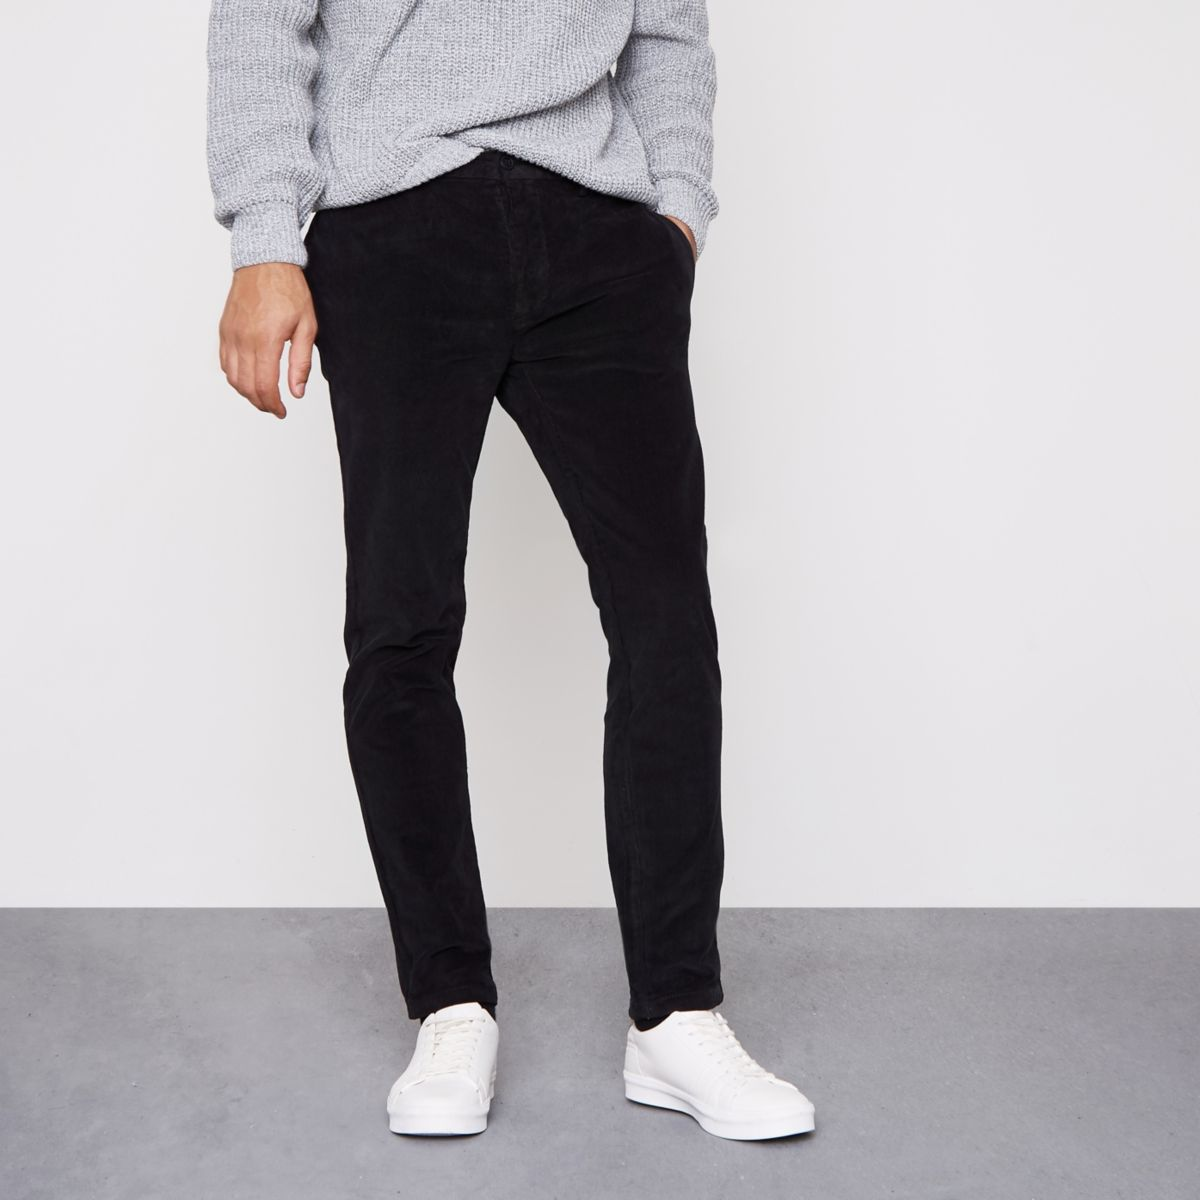 Black cord skinny smart pants